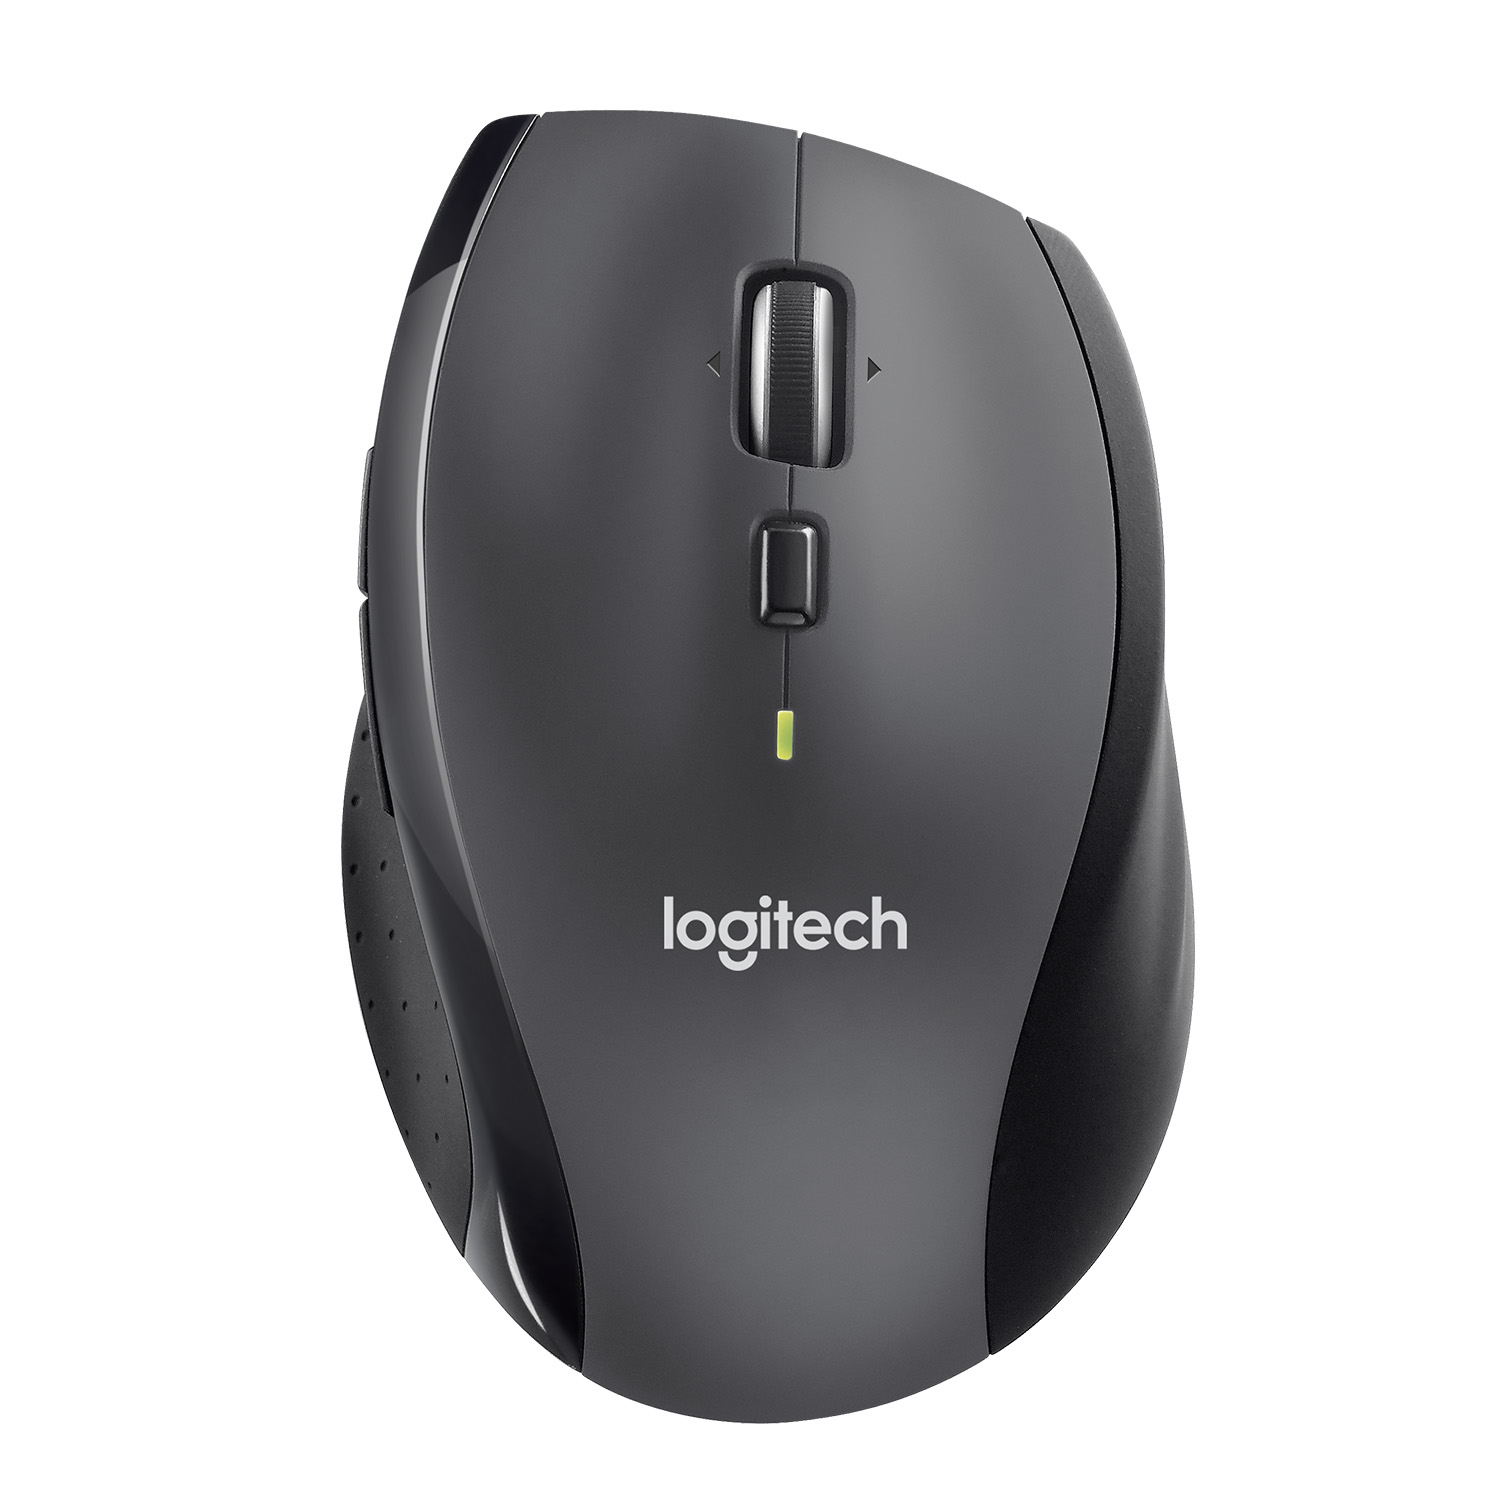 Logitech M705 wireless Laser